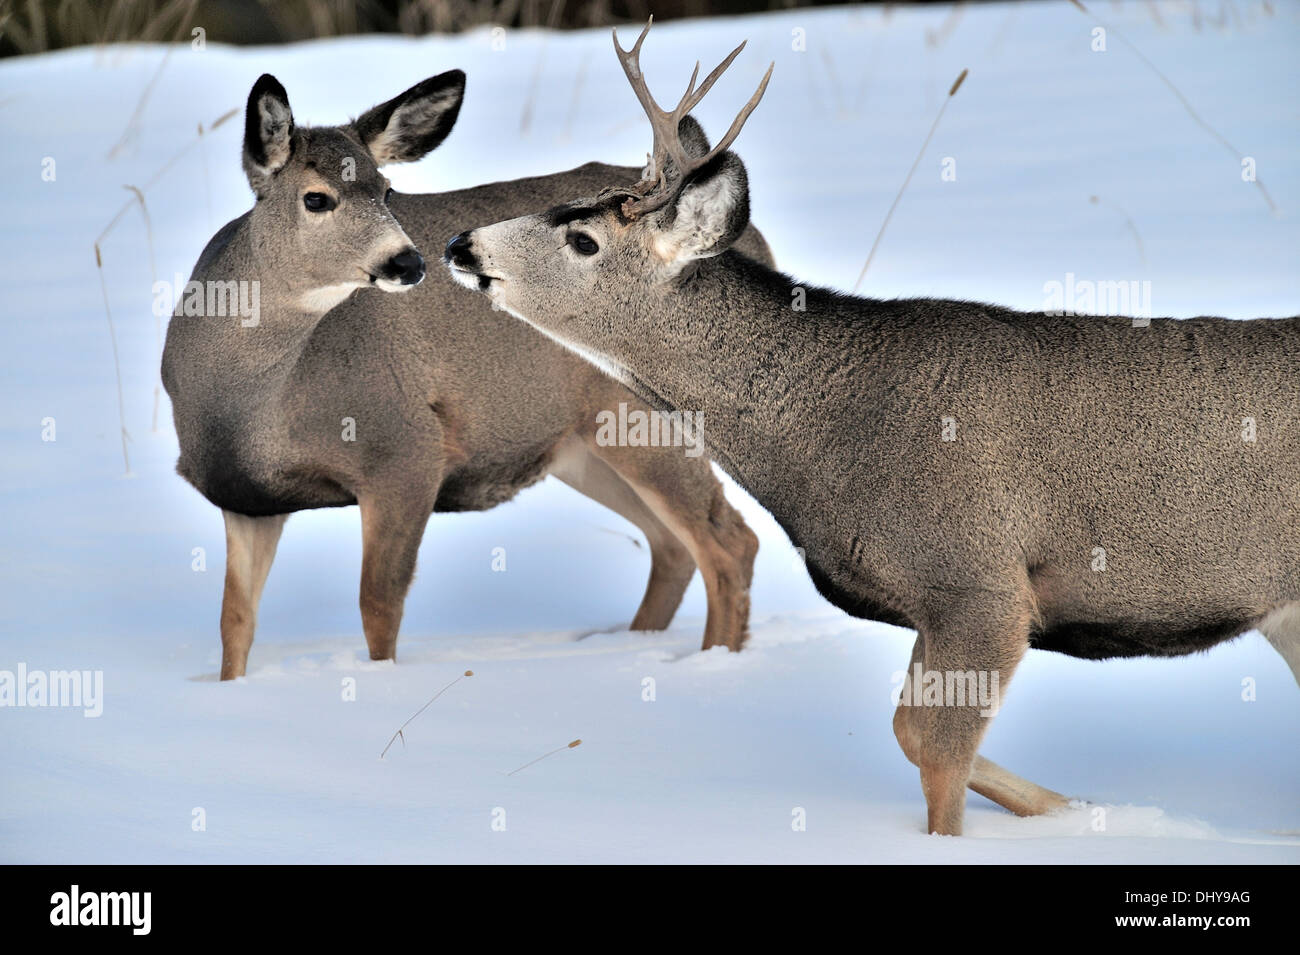 Mule deer a buck and a doe interacting with each other - Stock Image